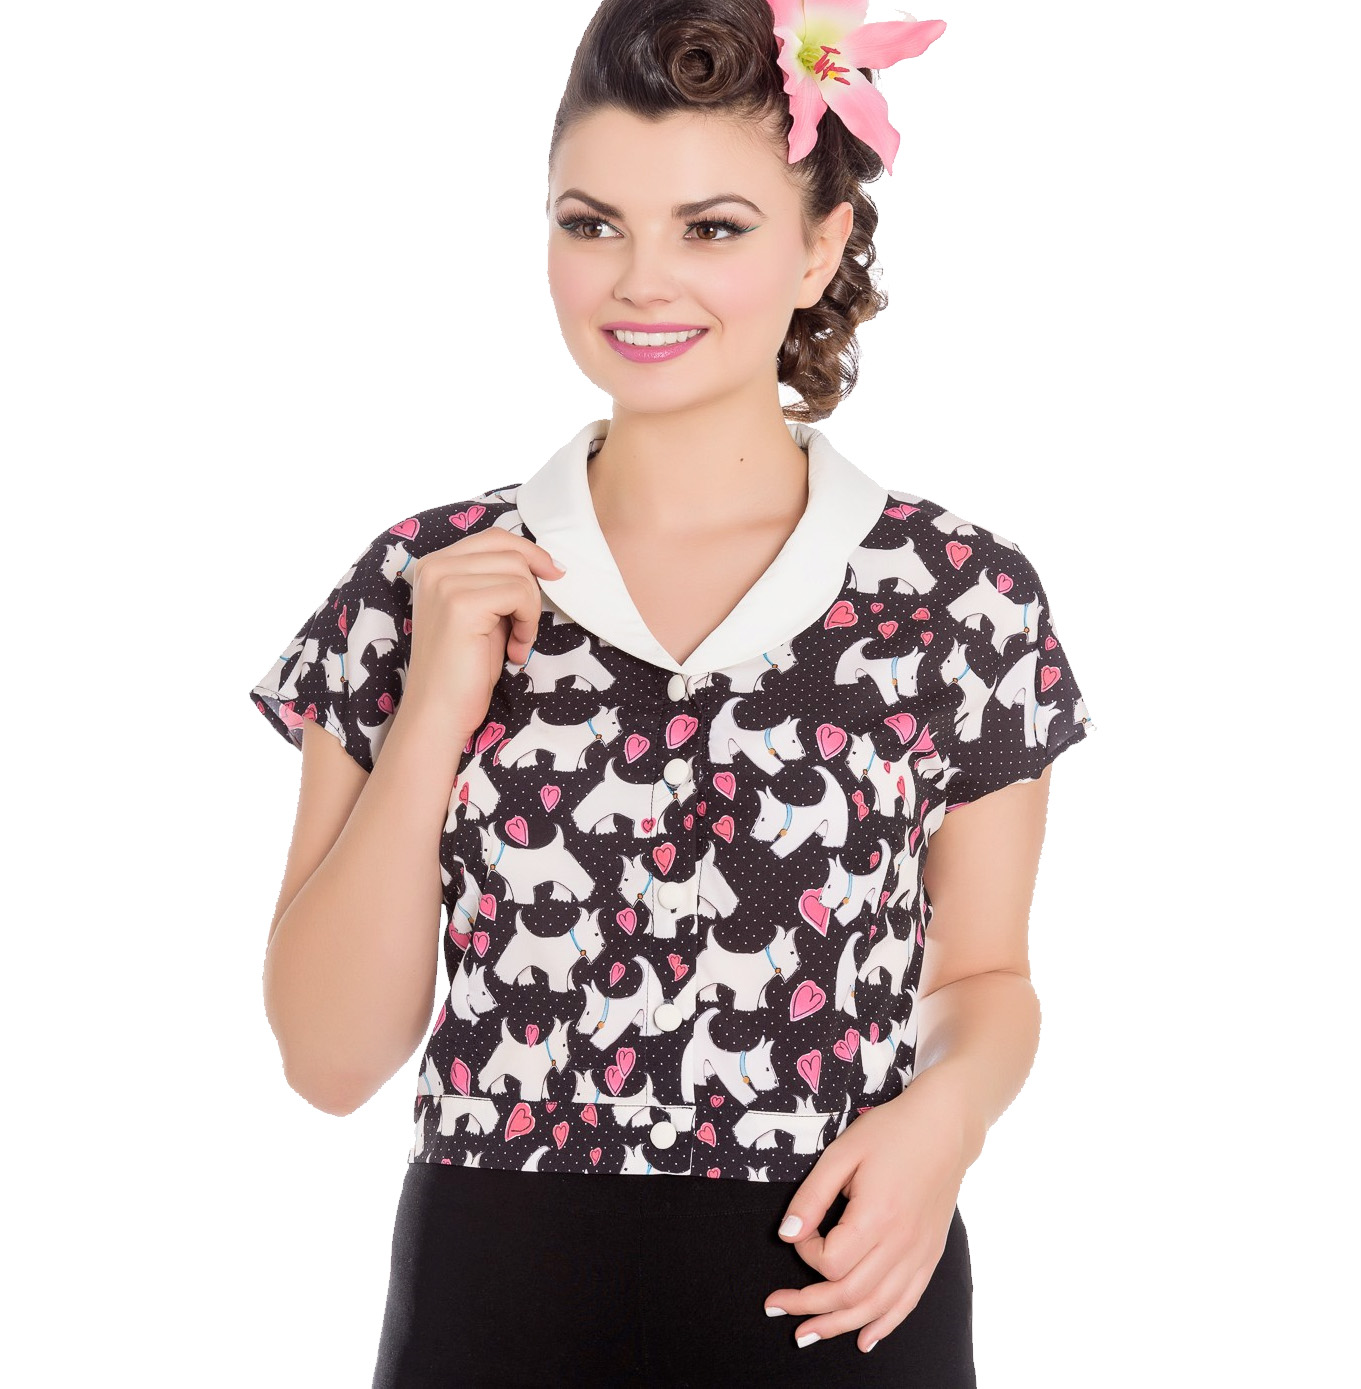 Hell-Bunny-50s-Retro-Top-Scottie-Dog-Heart-AGGY-Cropped-Blouse-Shirt-All-Sizes thumbnail 3